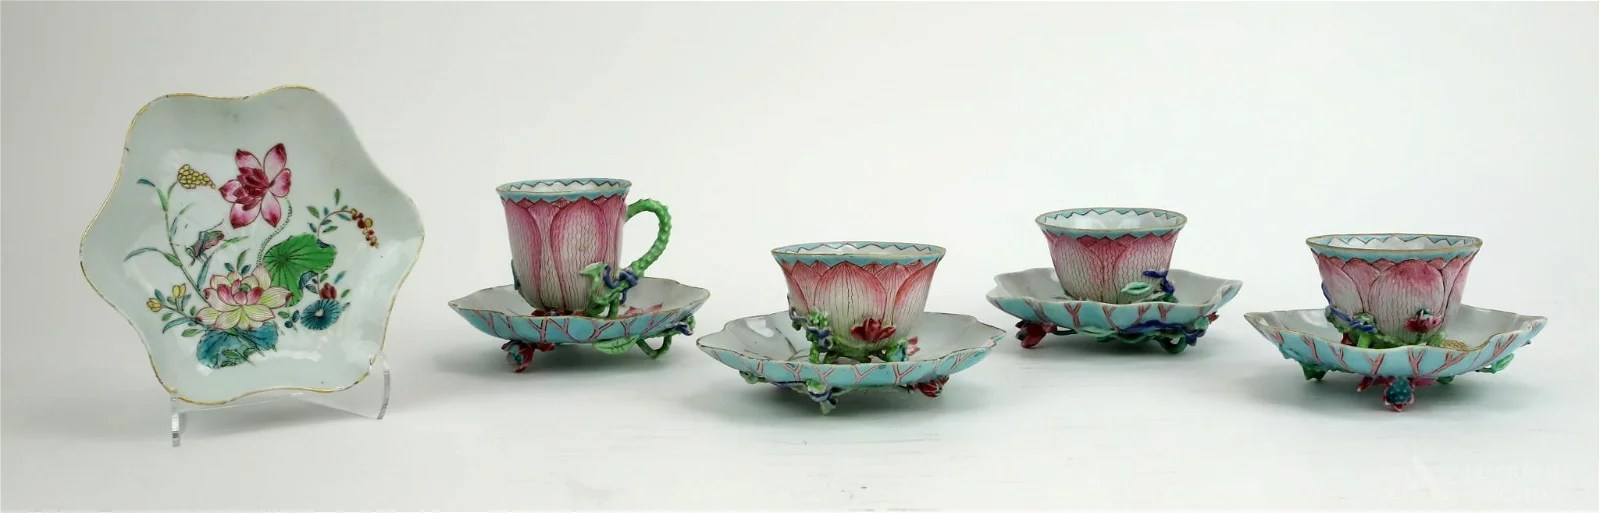 "Chinese Famille Rose ""Lotus\"" Tea Bowls and Saucers"